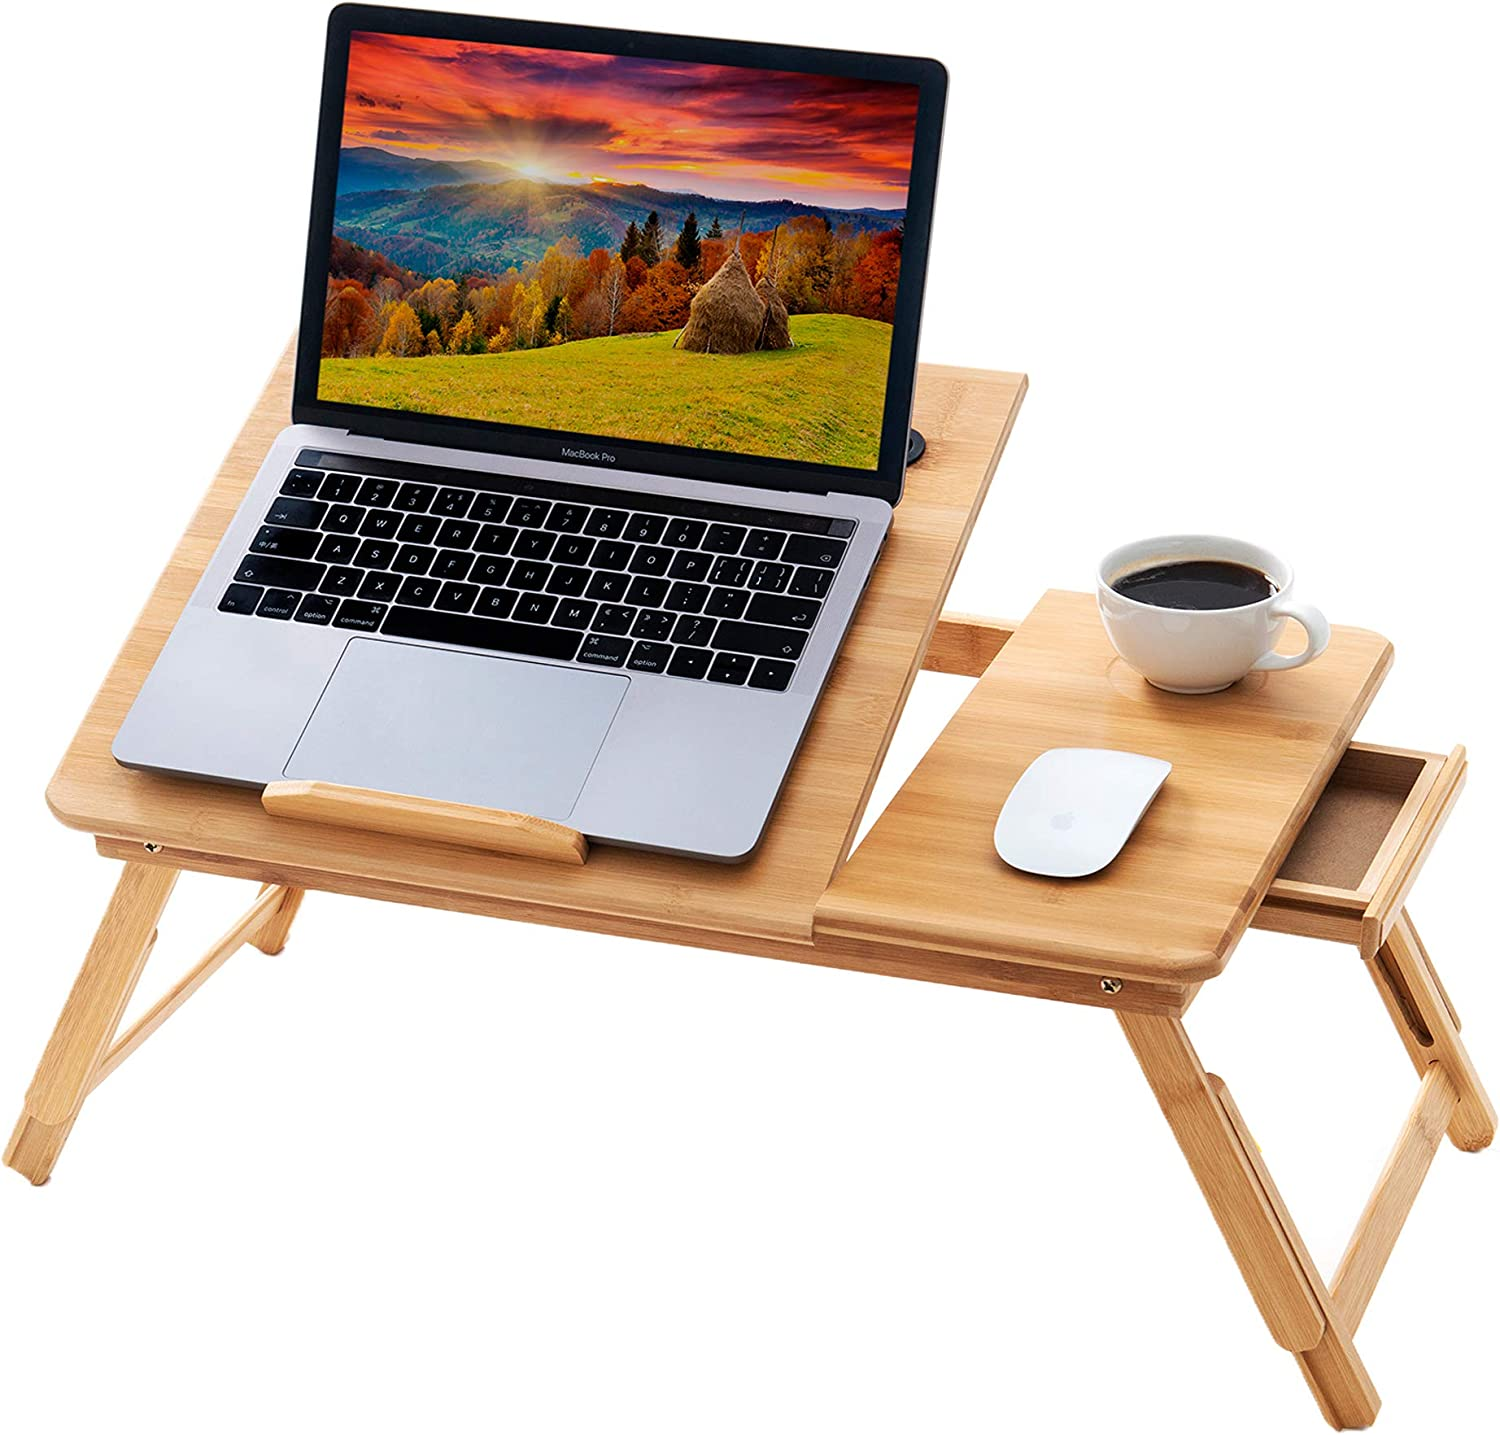 BMH 100% Natural Bamboo Foldable Laptop Desk Multi Tasking Adjustable Height Table Bed Tray with Drawer for Laptops Stand and Eating Writing Study